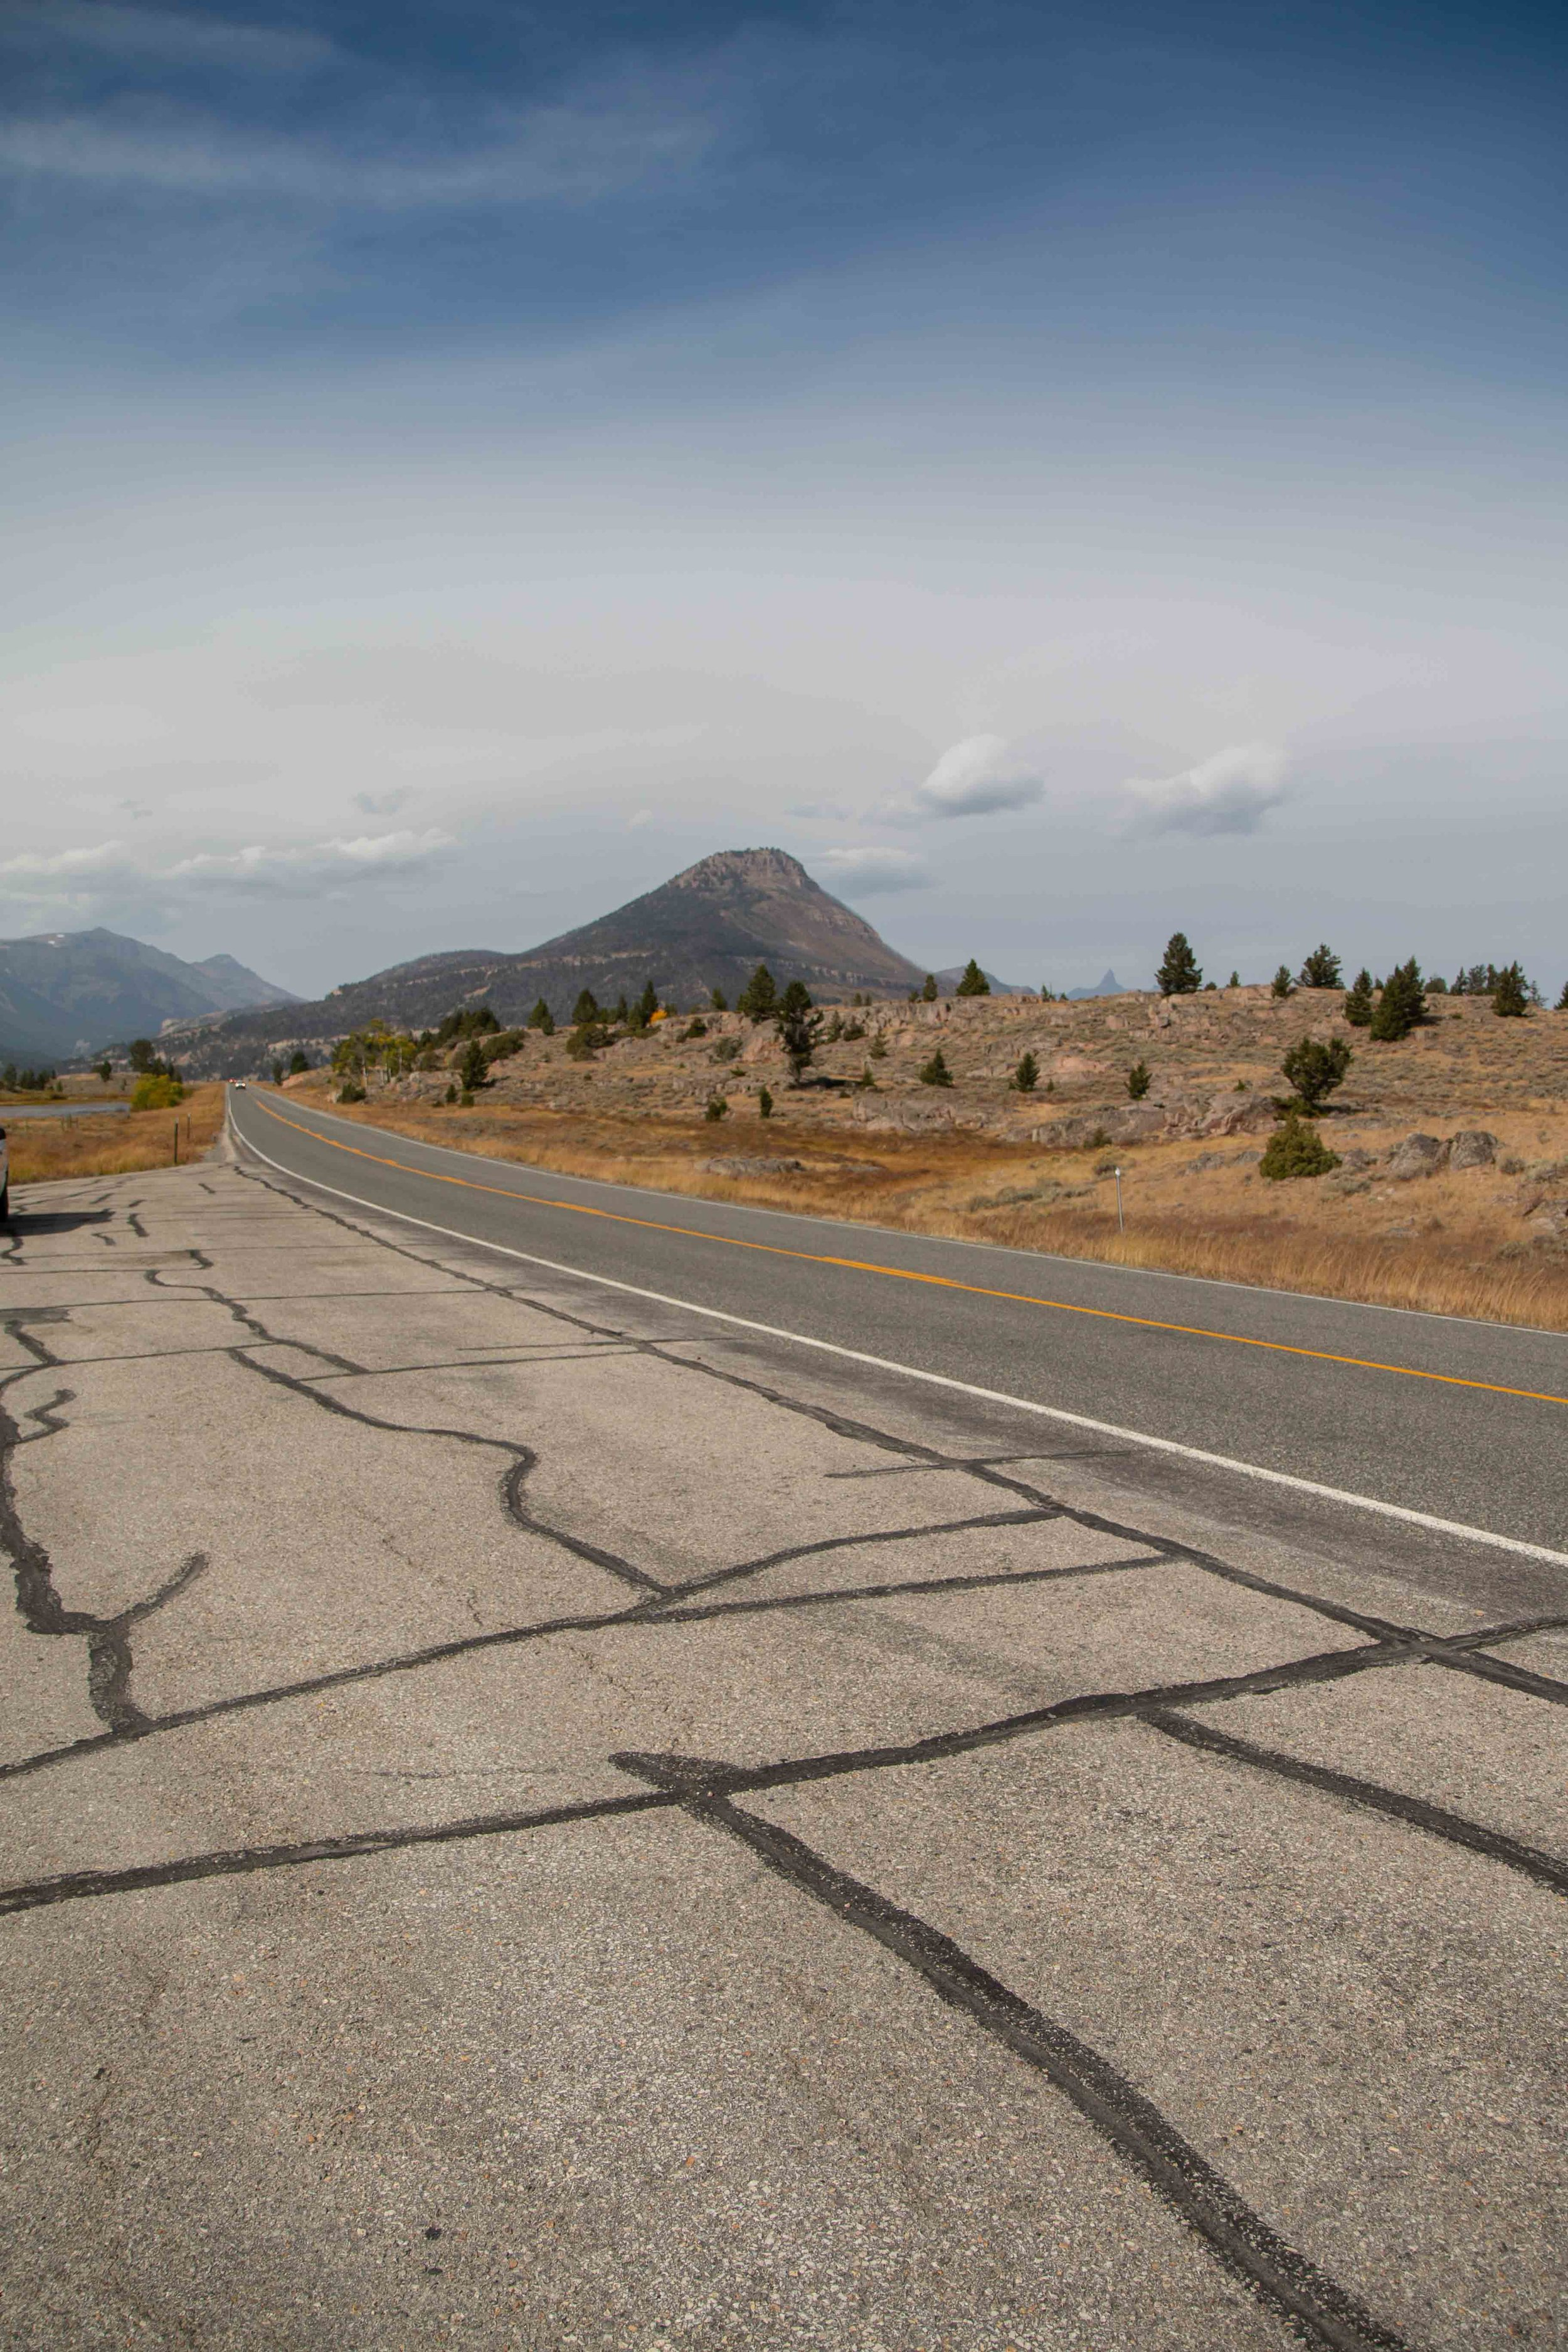 Cheif Joseph Highway on Beartooth Pass in Wyoming and Montana. Gorgeous scenic views